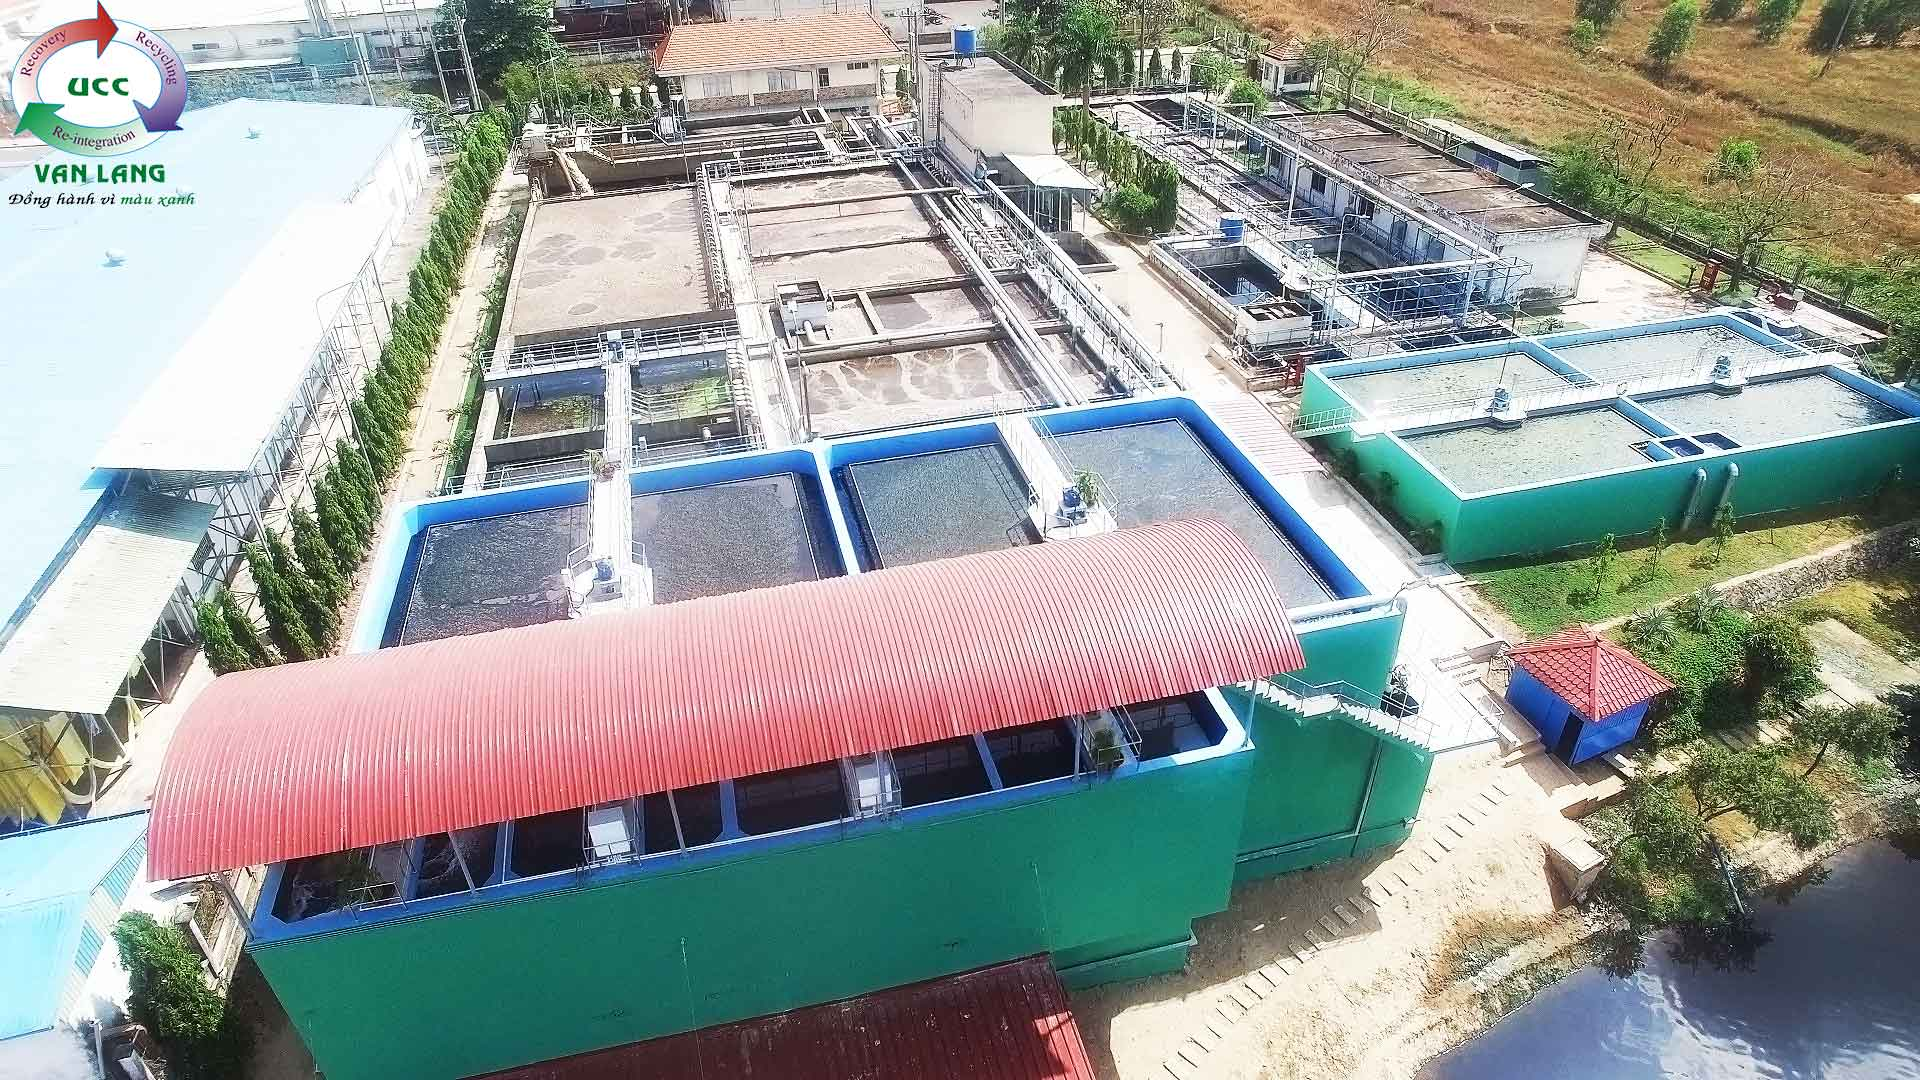 THE WASTEWATER TREATMENT PLANT OF LONG BINH INDUSTRIAL ZONE